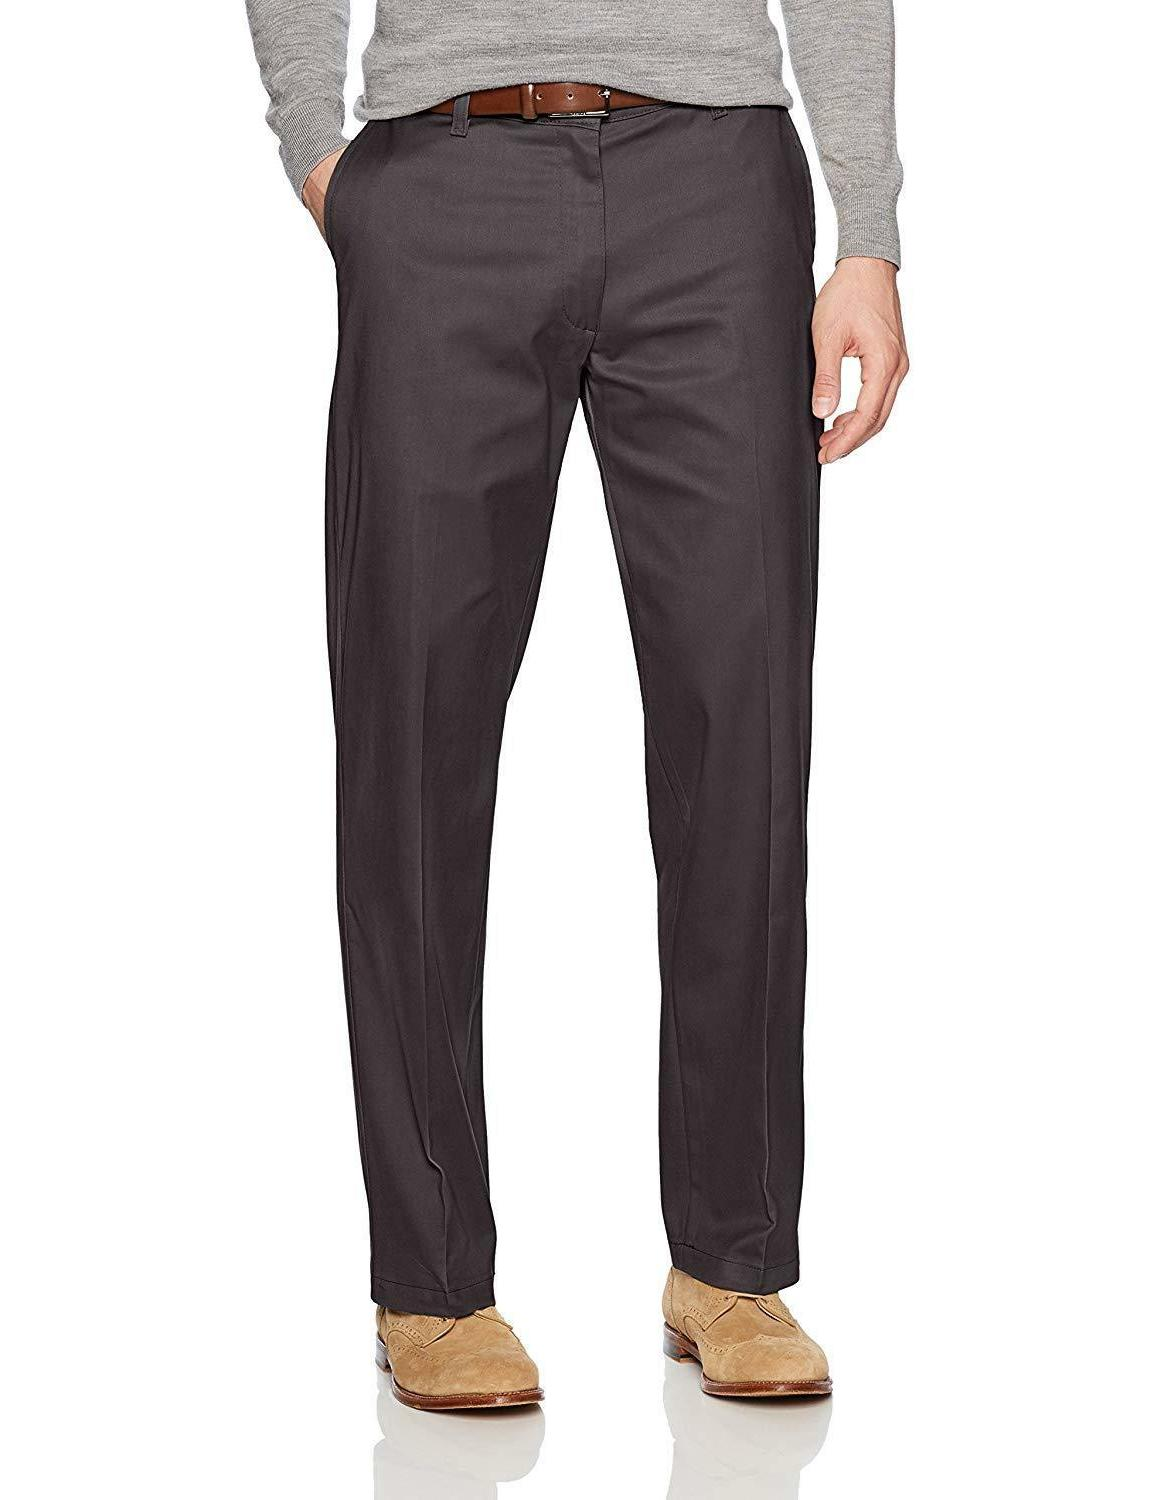 LEE Men's Stretch Relaxed Fit Flat Front